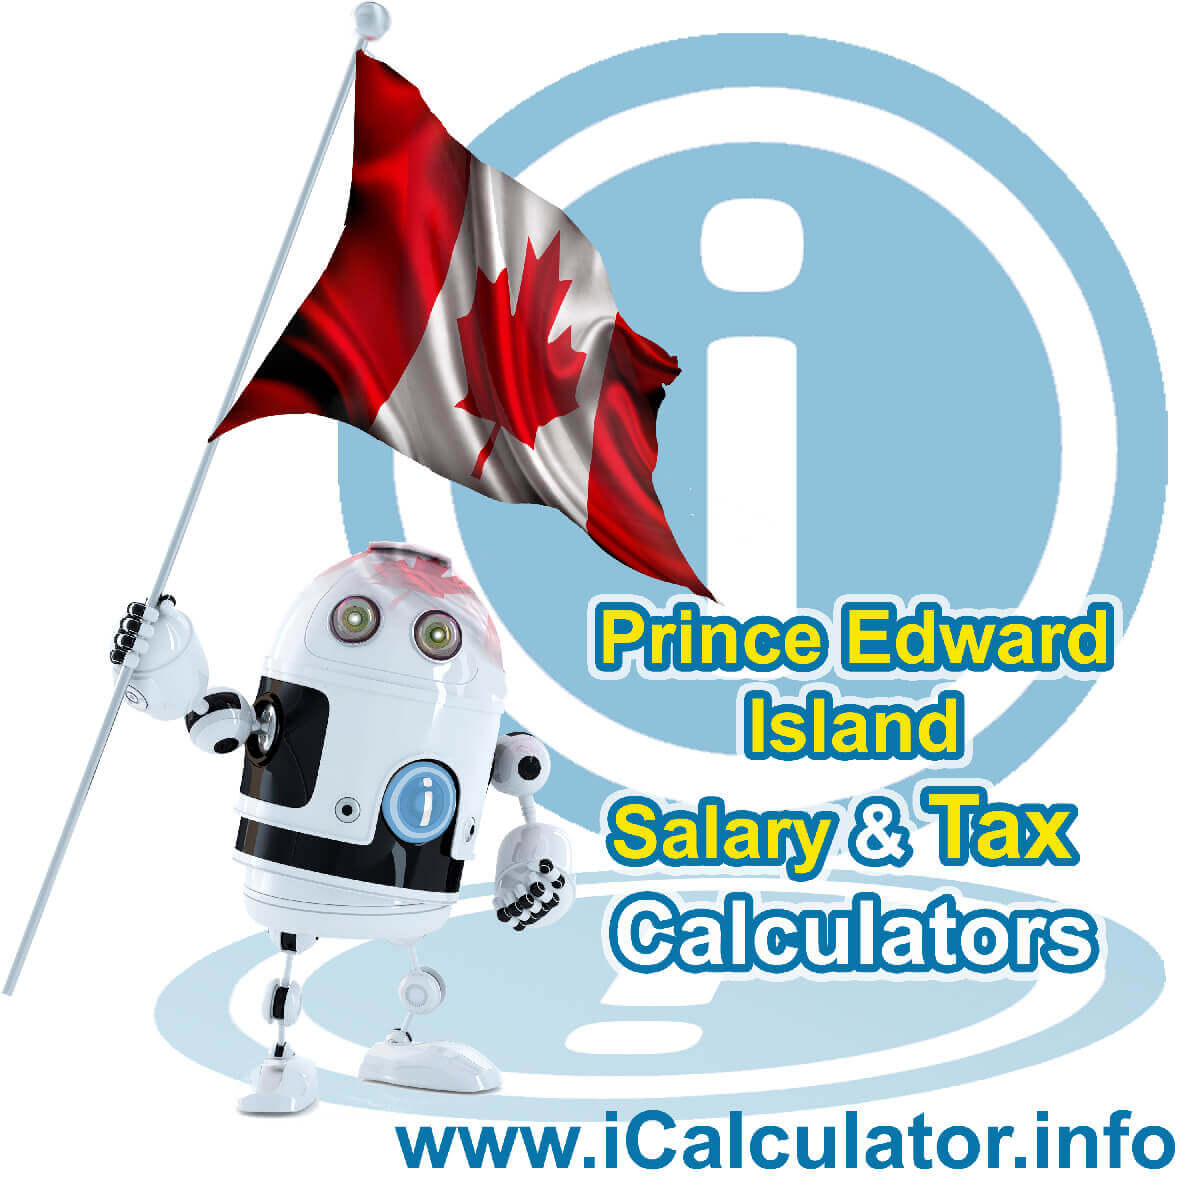 Prince Edward Island 2020 Salary Comparison Calculator. This image shows the Prince Edward Island flag and information relating to the tax formula used in the Prince Edward Island 2020 Salary Comparison Calculator